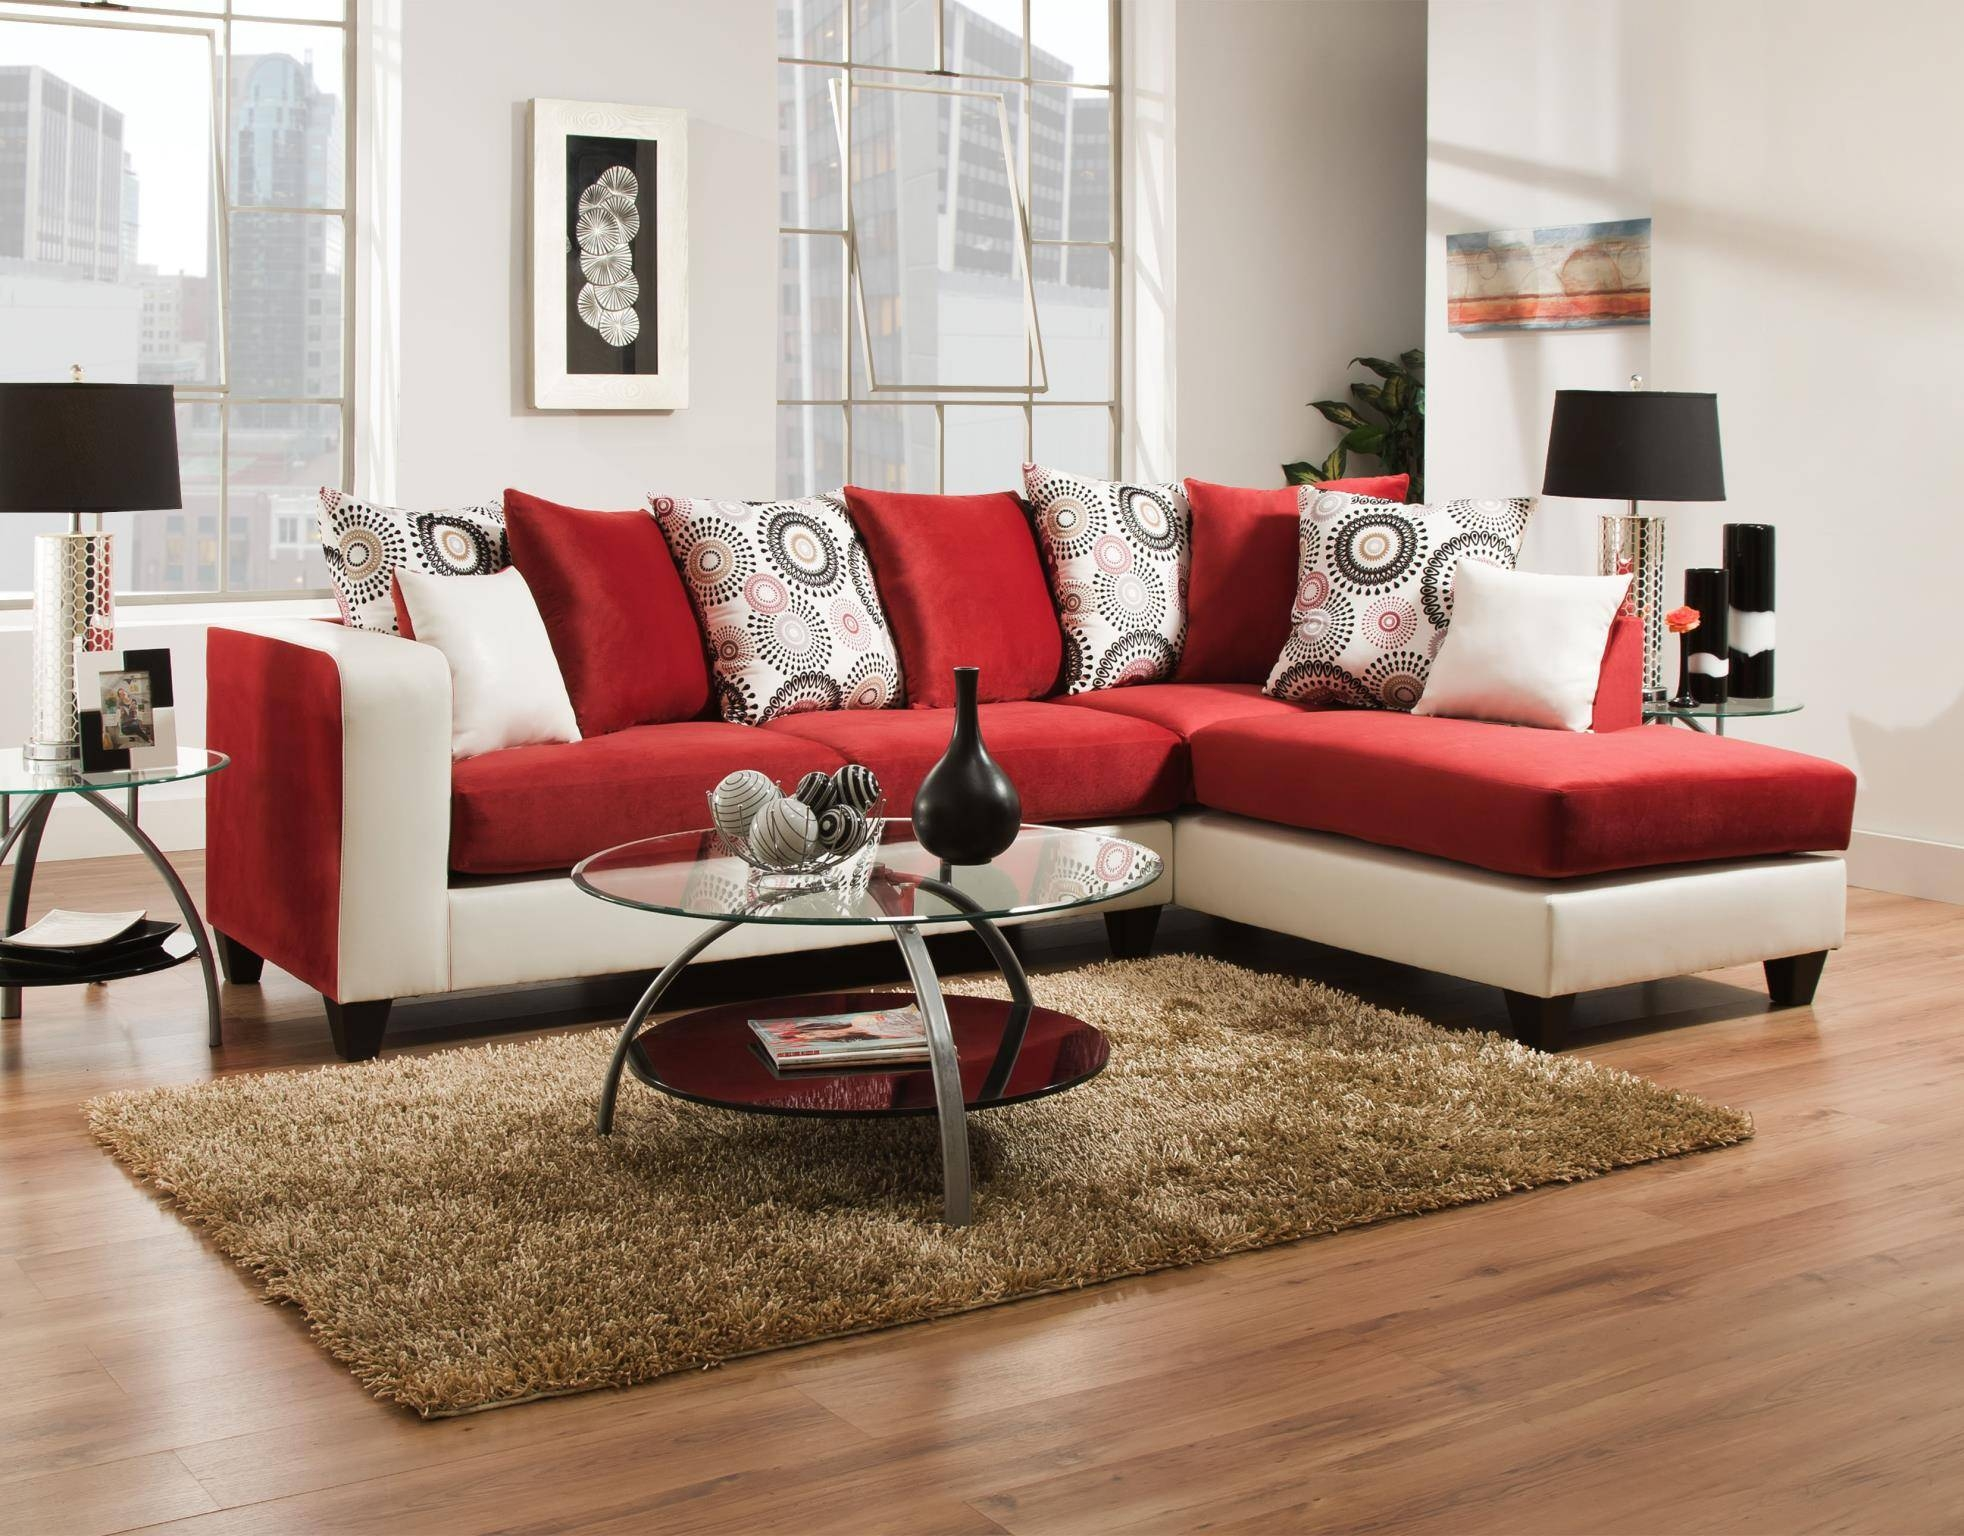 Displaying Gallery of 10 Foot Sectional Sofa (View 27 of 30 ...